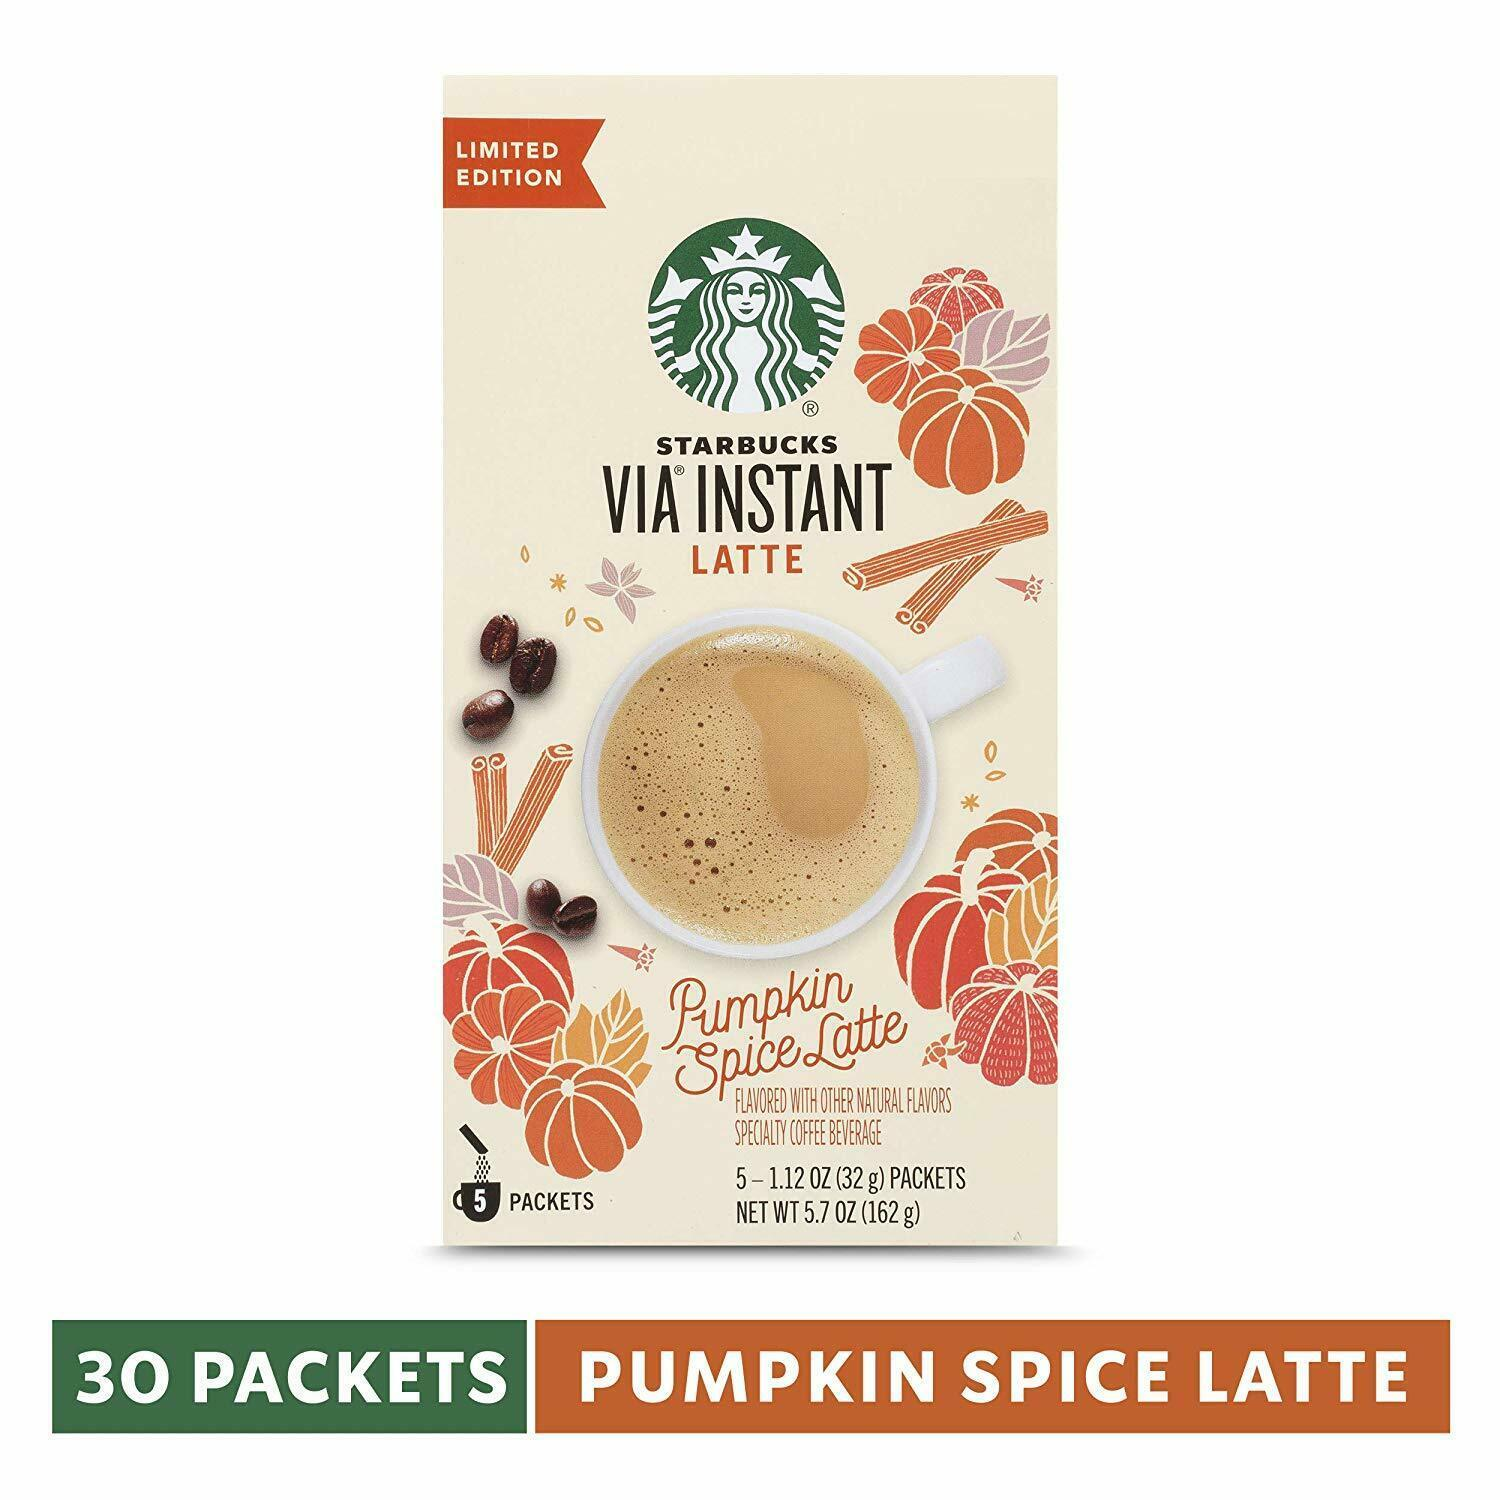 Primary image for STARBUCKS VIA INSTANT PUMPKIN SPICE LATTE 5CT (PACK OF 6)